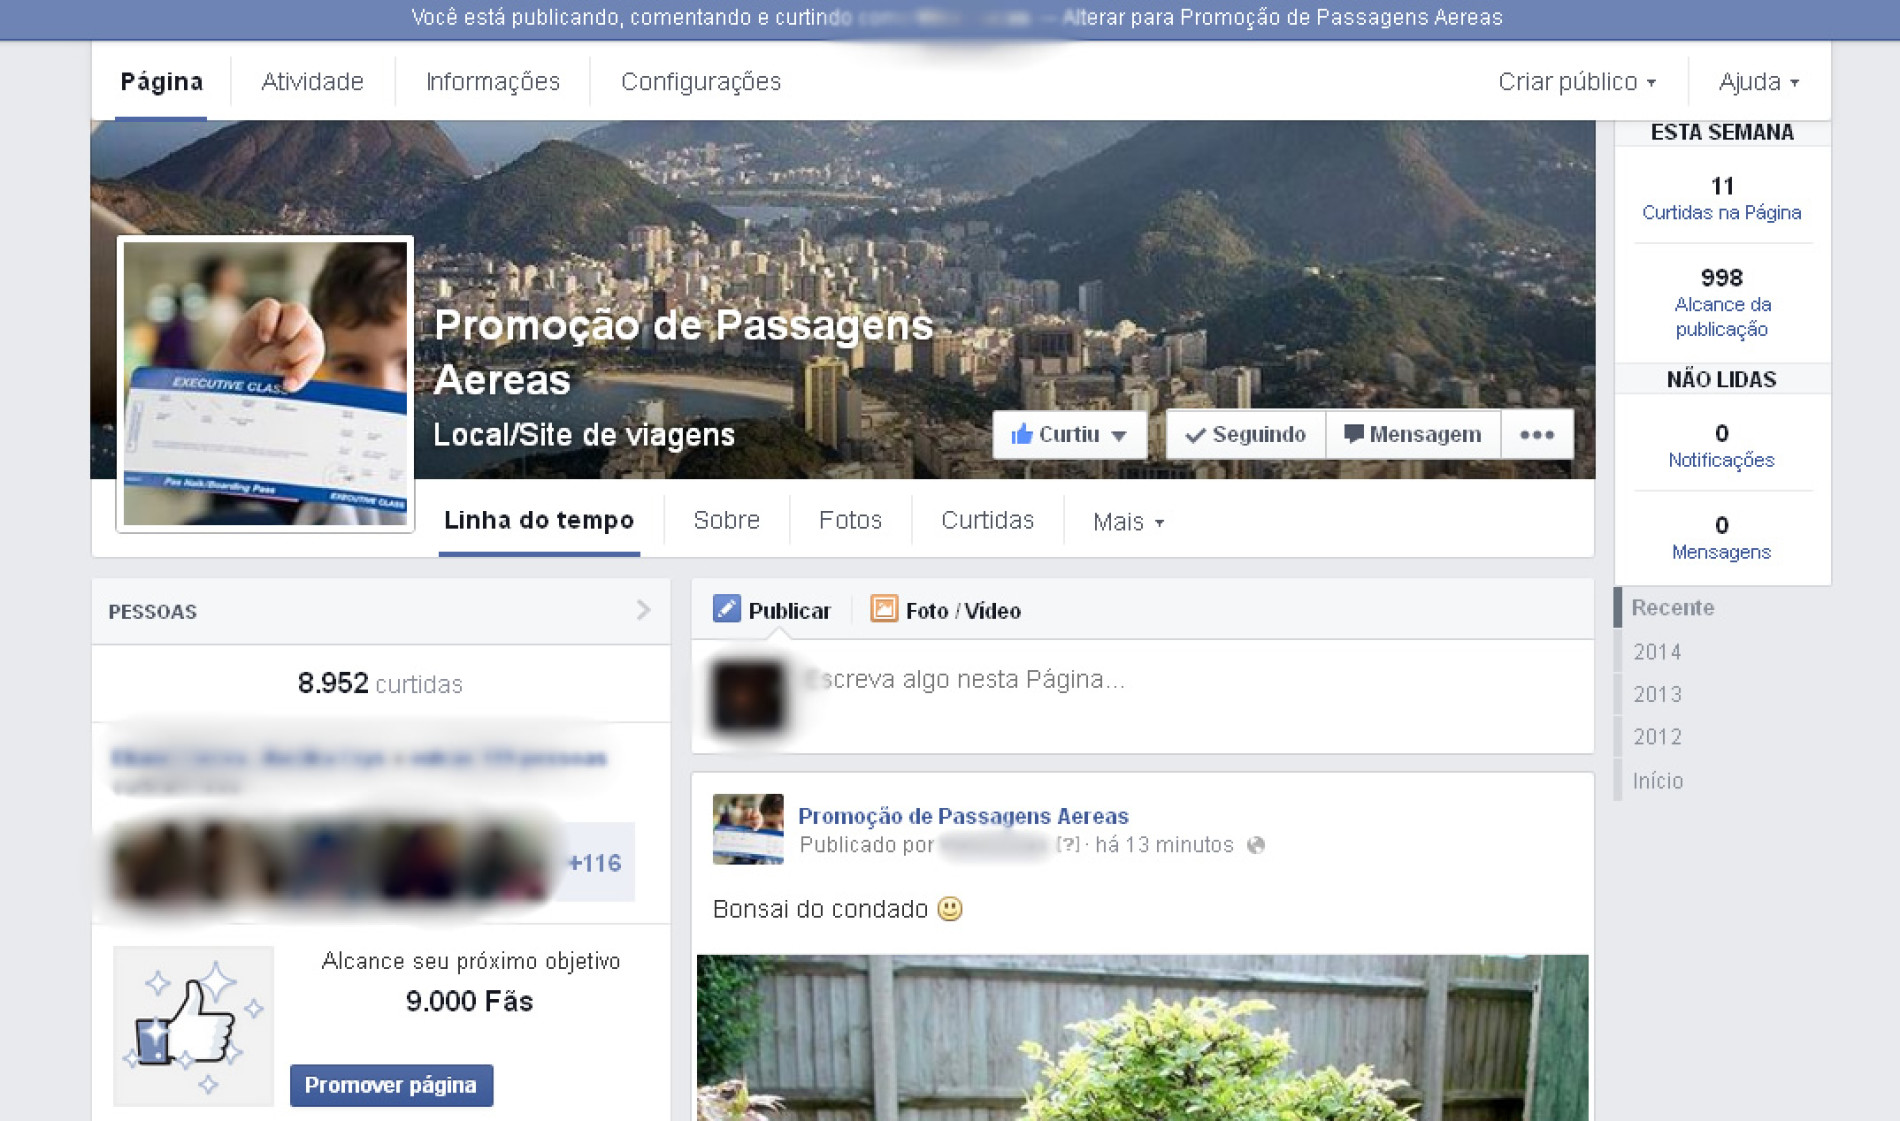 Facebook acaba de atualizar as Fan Pages com novo layout